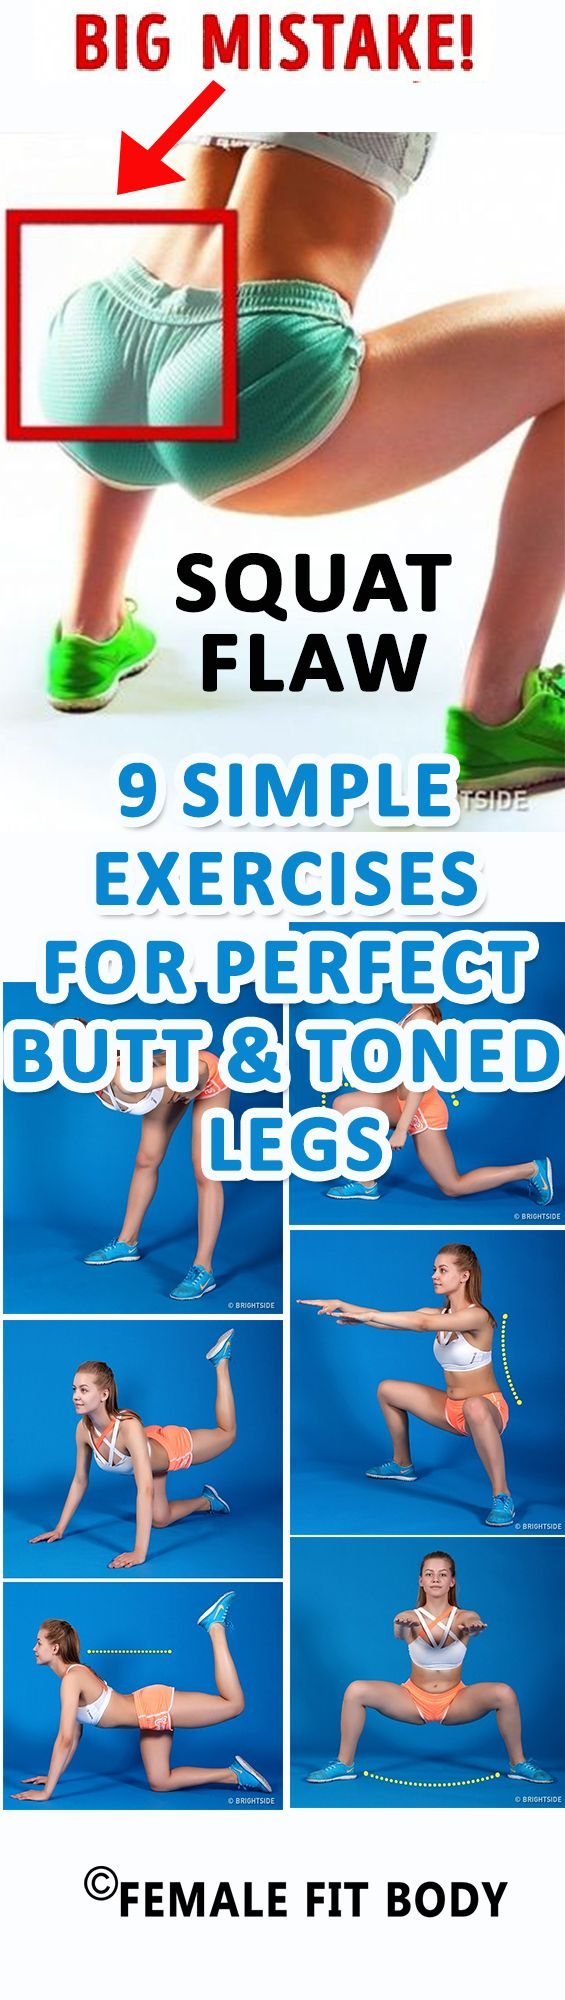 9 Simple Exercises for Perfect Butt and Toned Legs